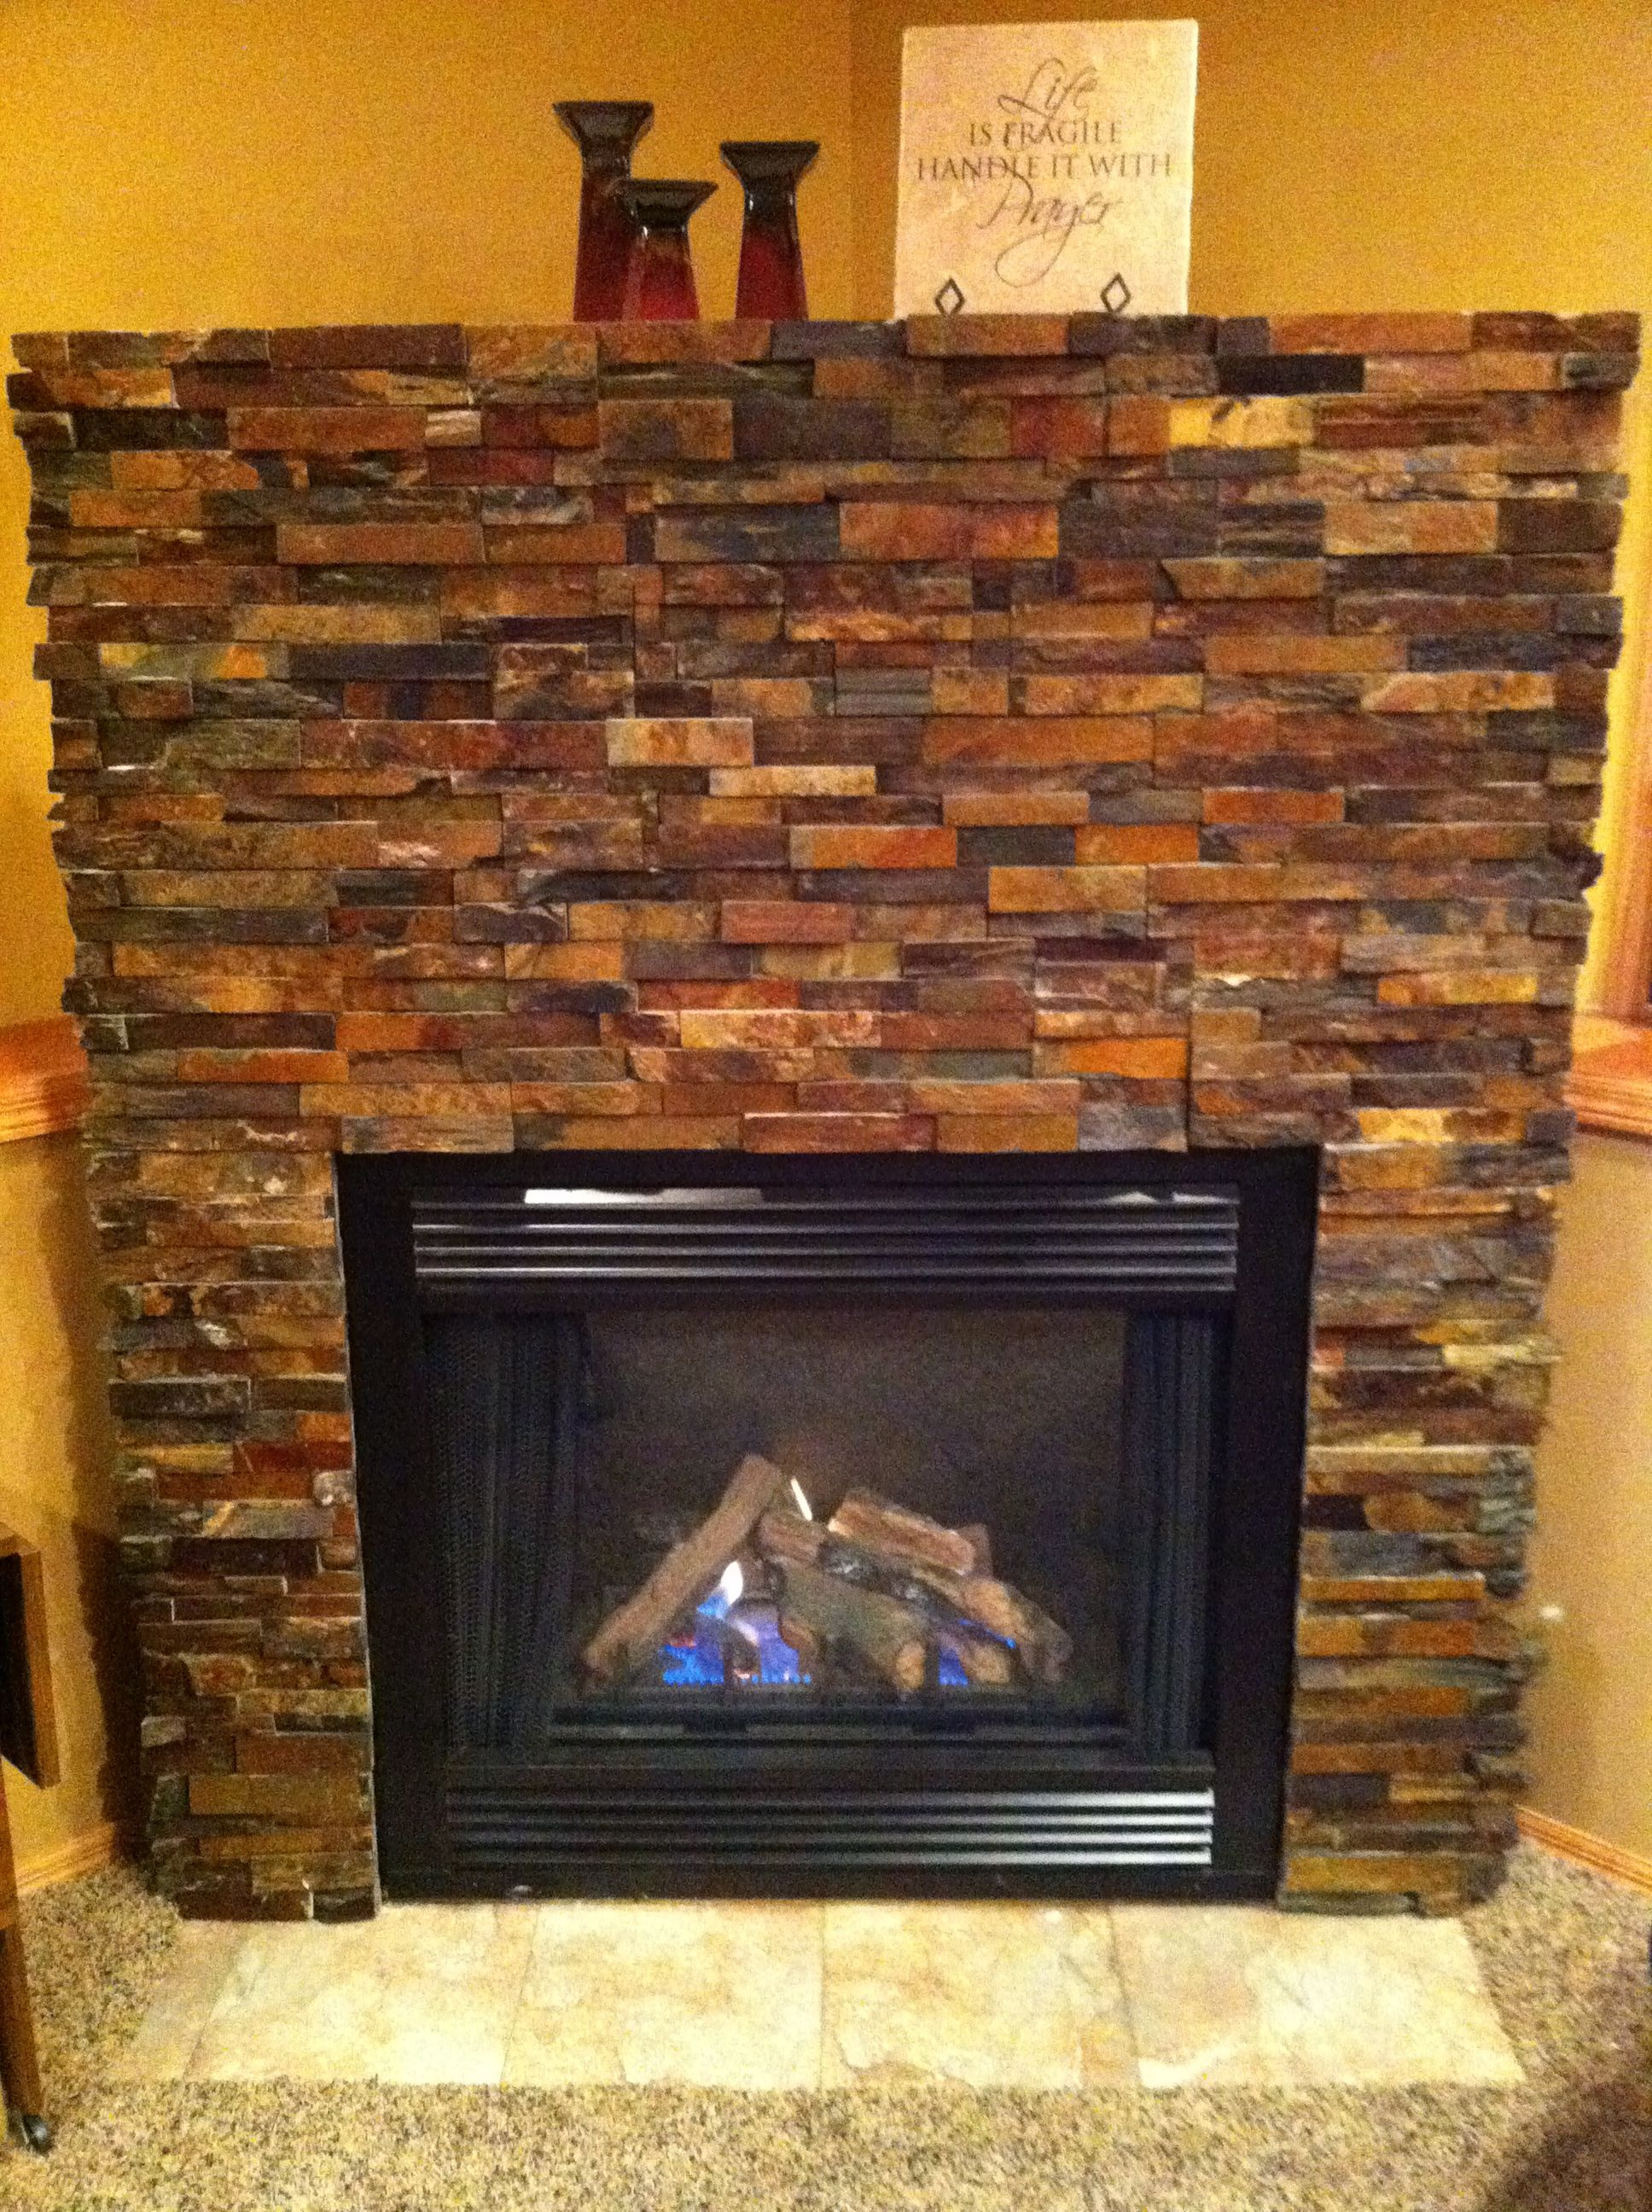 Bricking this fireplace was actually a fun home DIY Home do it